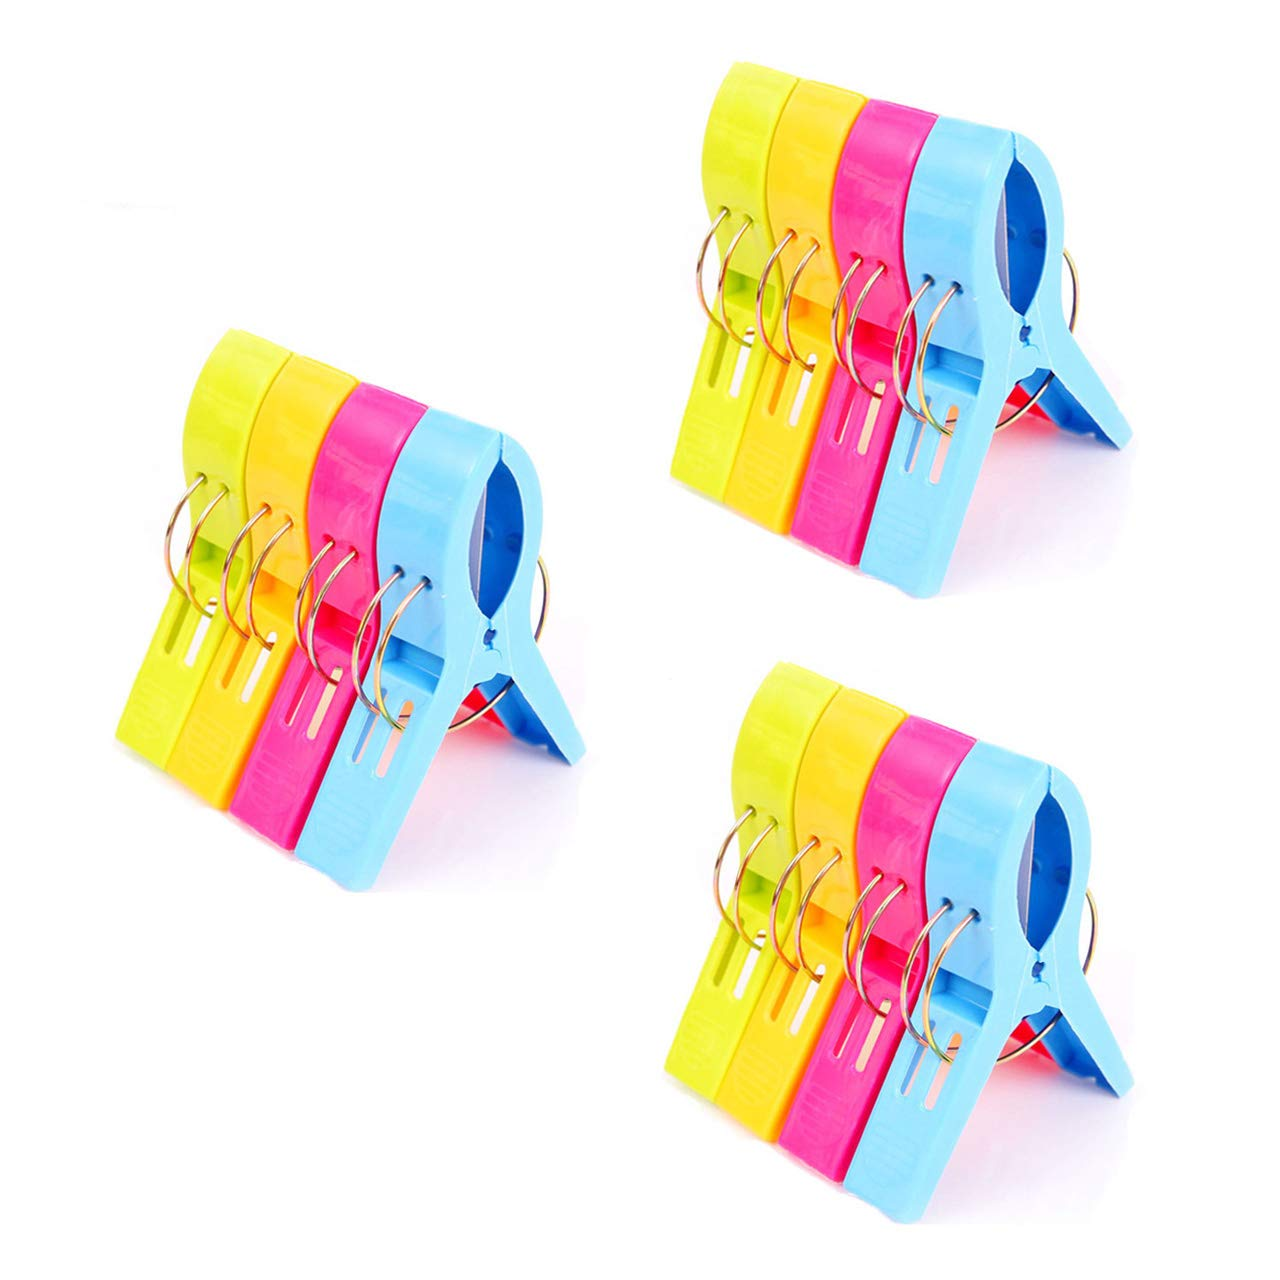 July Miracle Beach Towel Clips, 12pcs Large Size Windproof Plastic Bathroom Towel Clips, Quilt Clamps Clothes Pegs for Pool Chairs, Laundry, Sunbeds and Sun Loungers